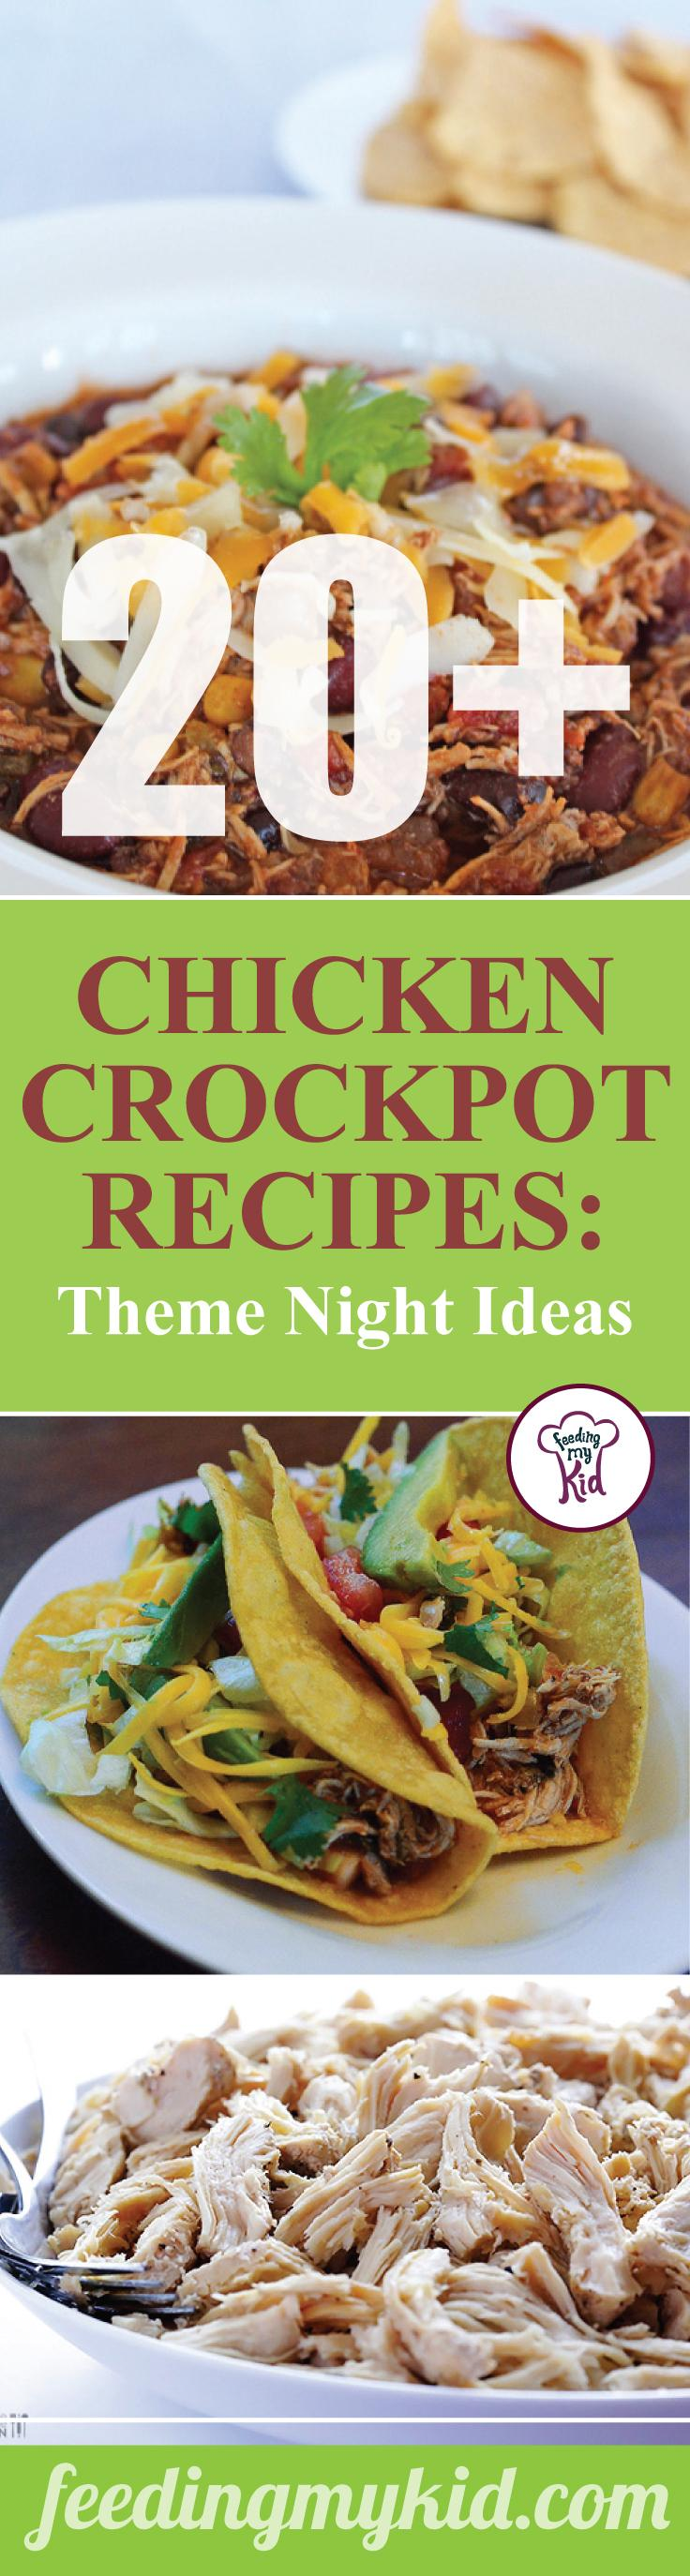 These chicken crockpot recipes makes the perfect theme night. Feeding My Kid is a great website for parents, filled with all the information you need about how to raise your kids, from healthy tips to nutritious recipes. #crockpot #mealtime #themenight #chicken